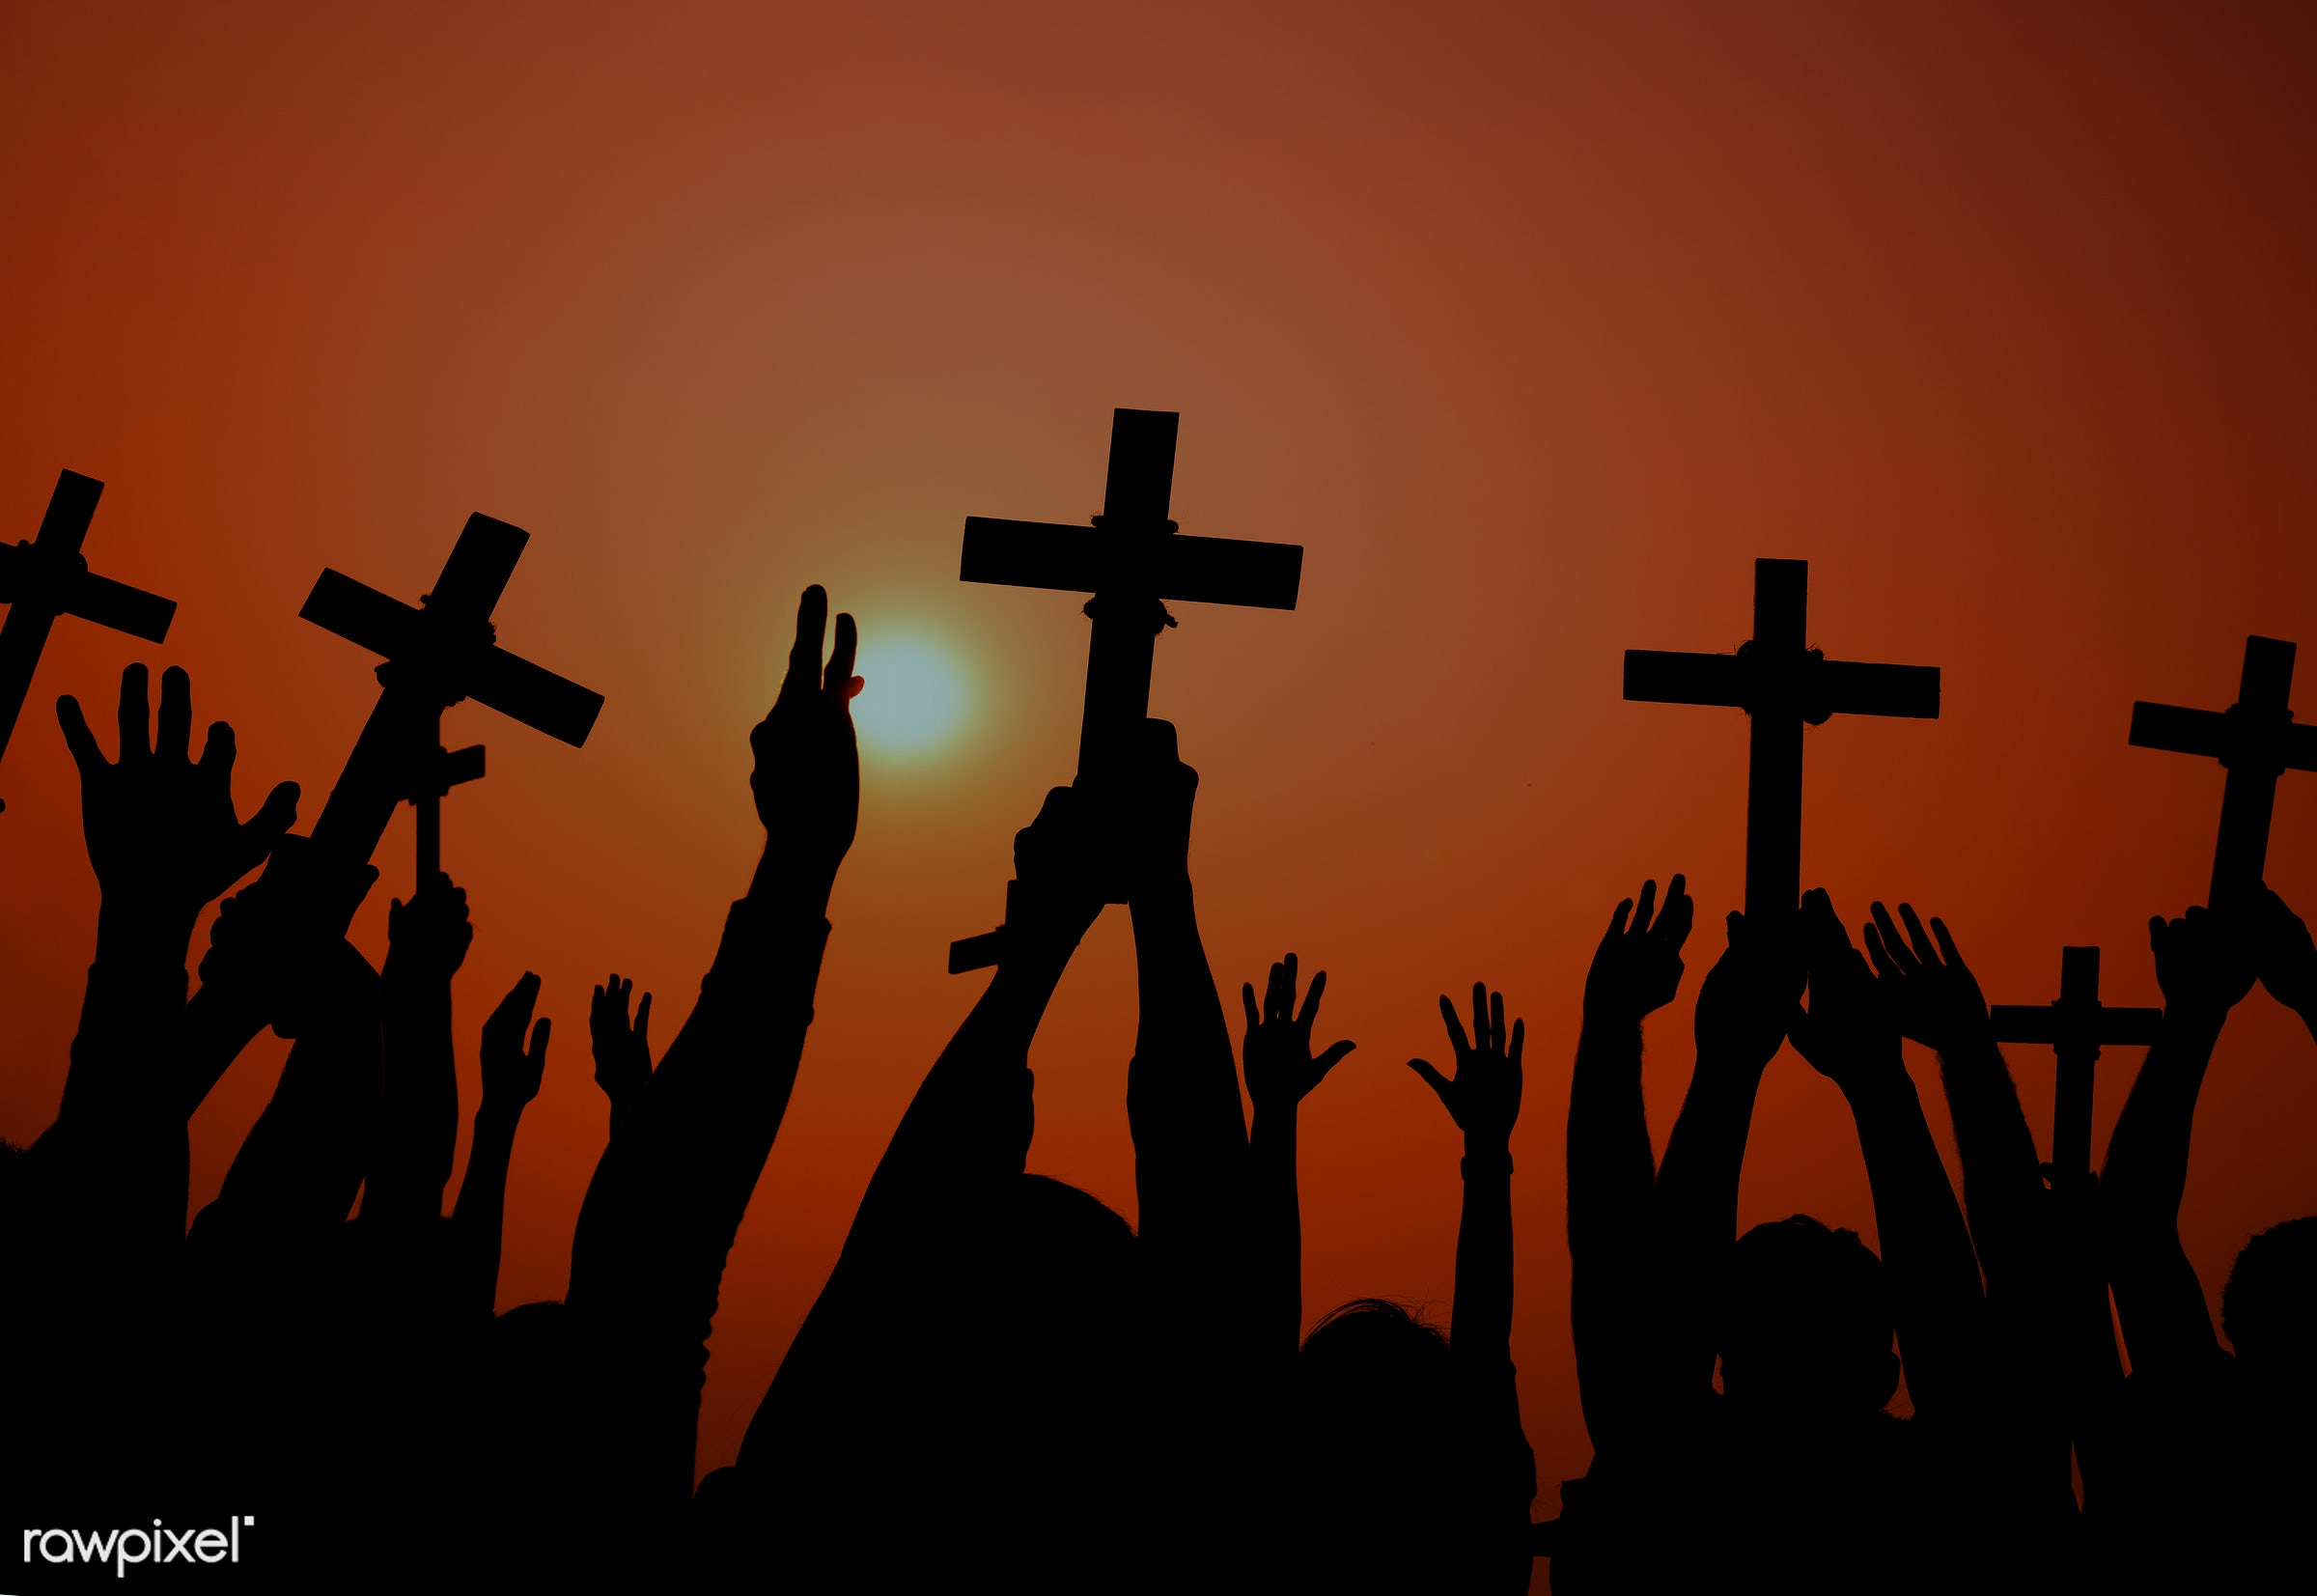 arm raised, aspiration, bowing, catholicism, cemetery, christianity, cross, cross shape, crucifix, death, easter, eternity,...